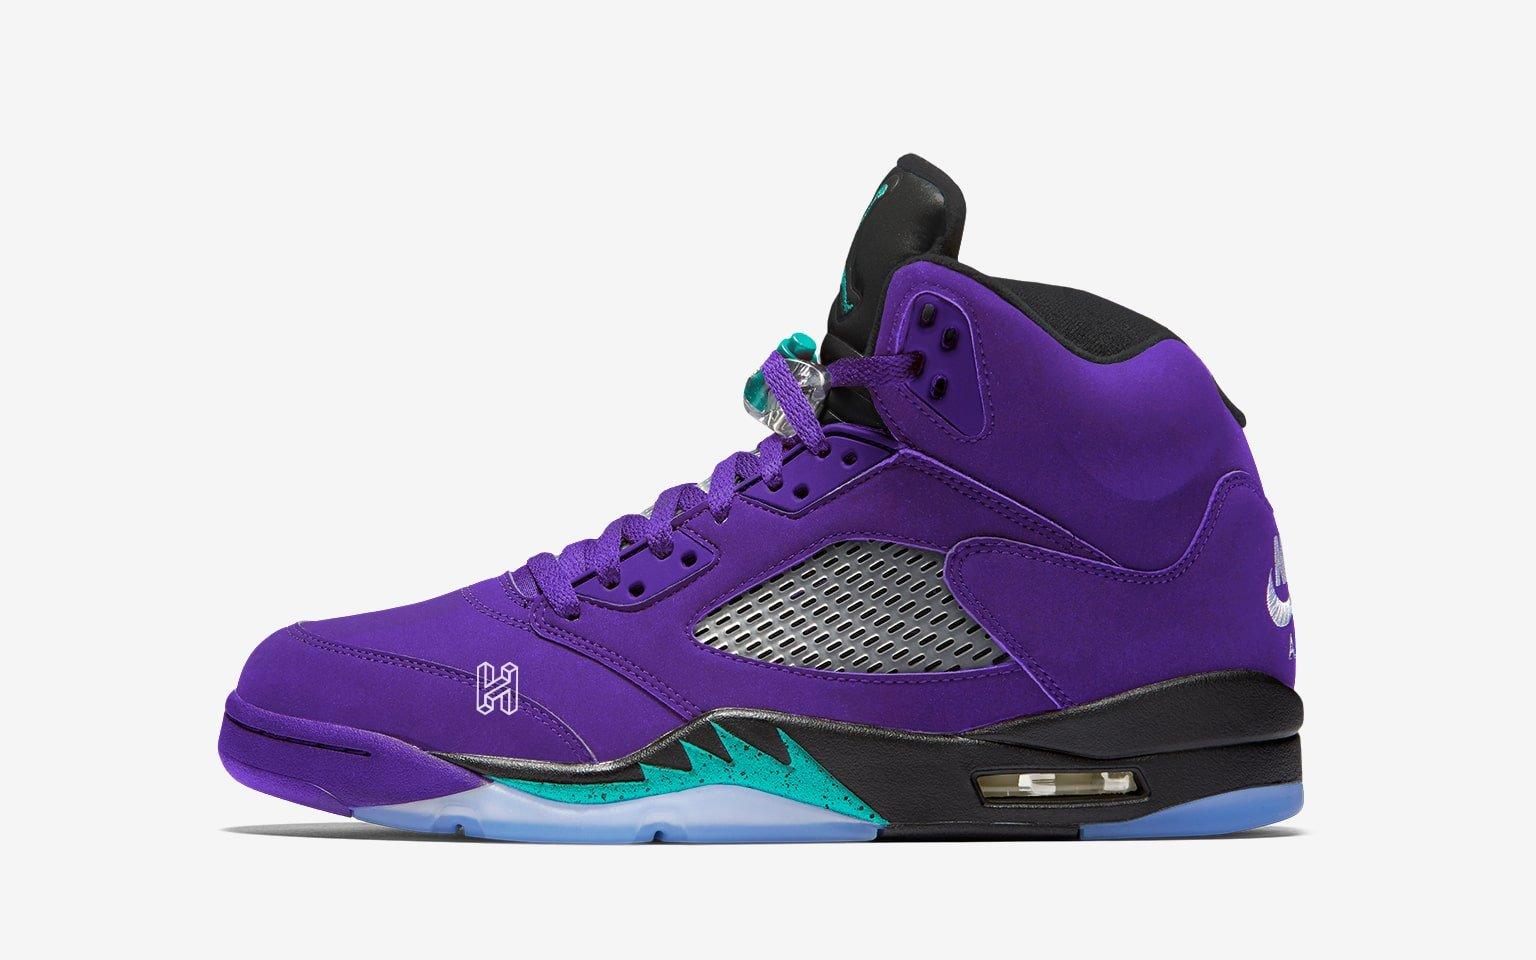 new jordan 5s coming out